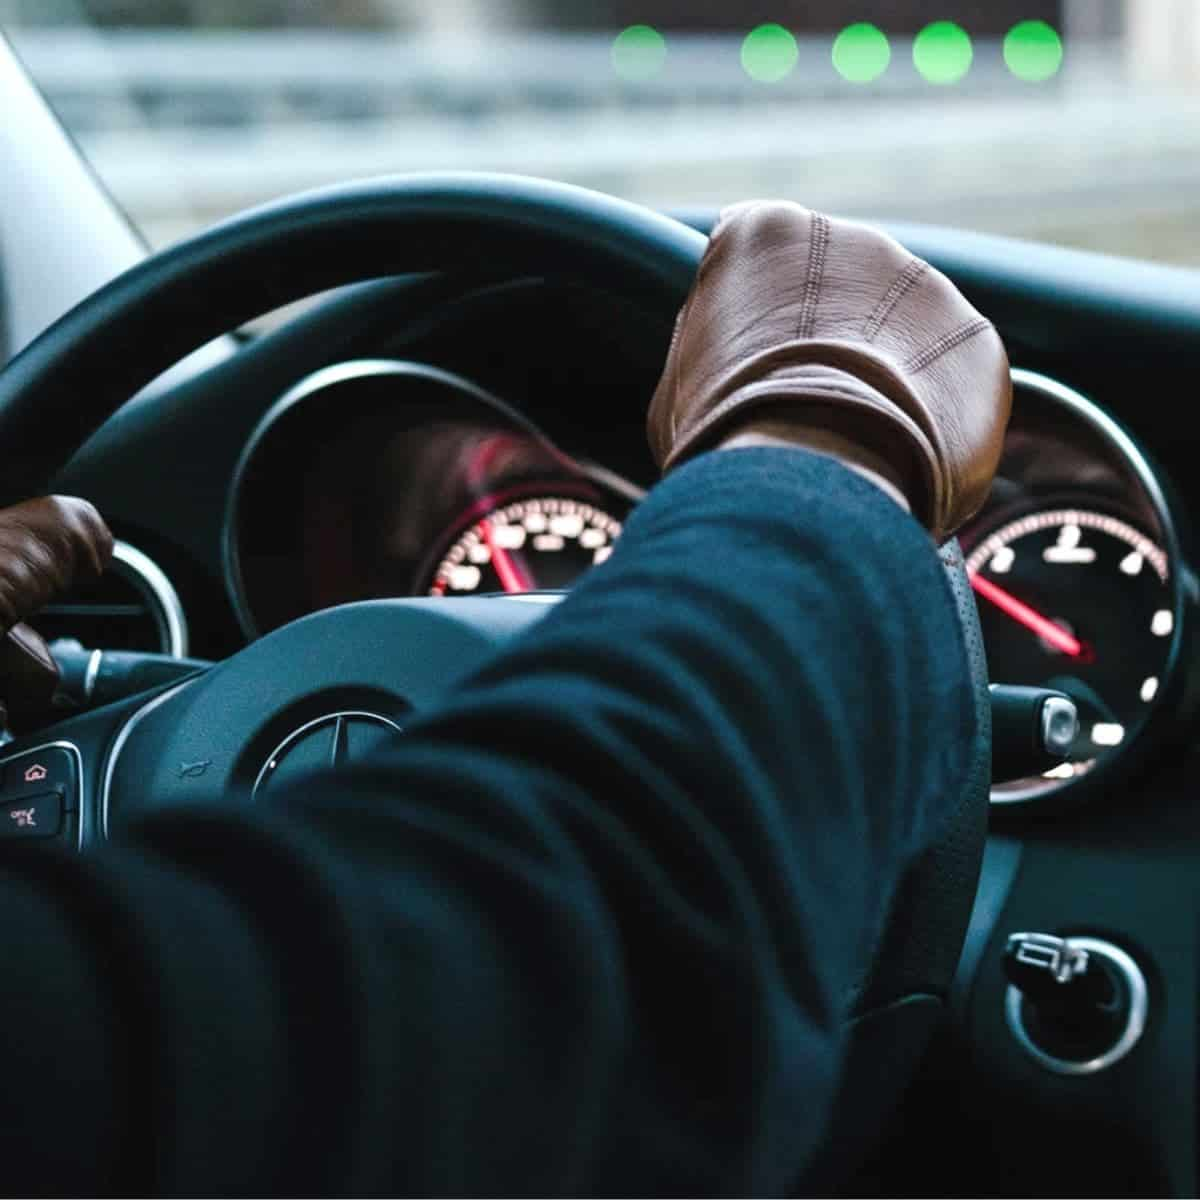 Person wearing leather driving gloves and holding a steering wheel.